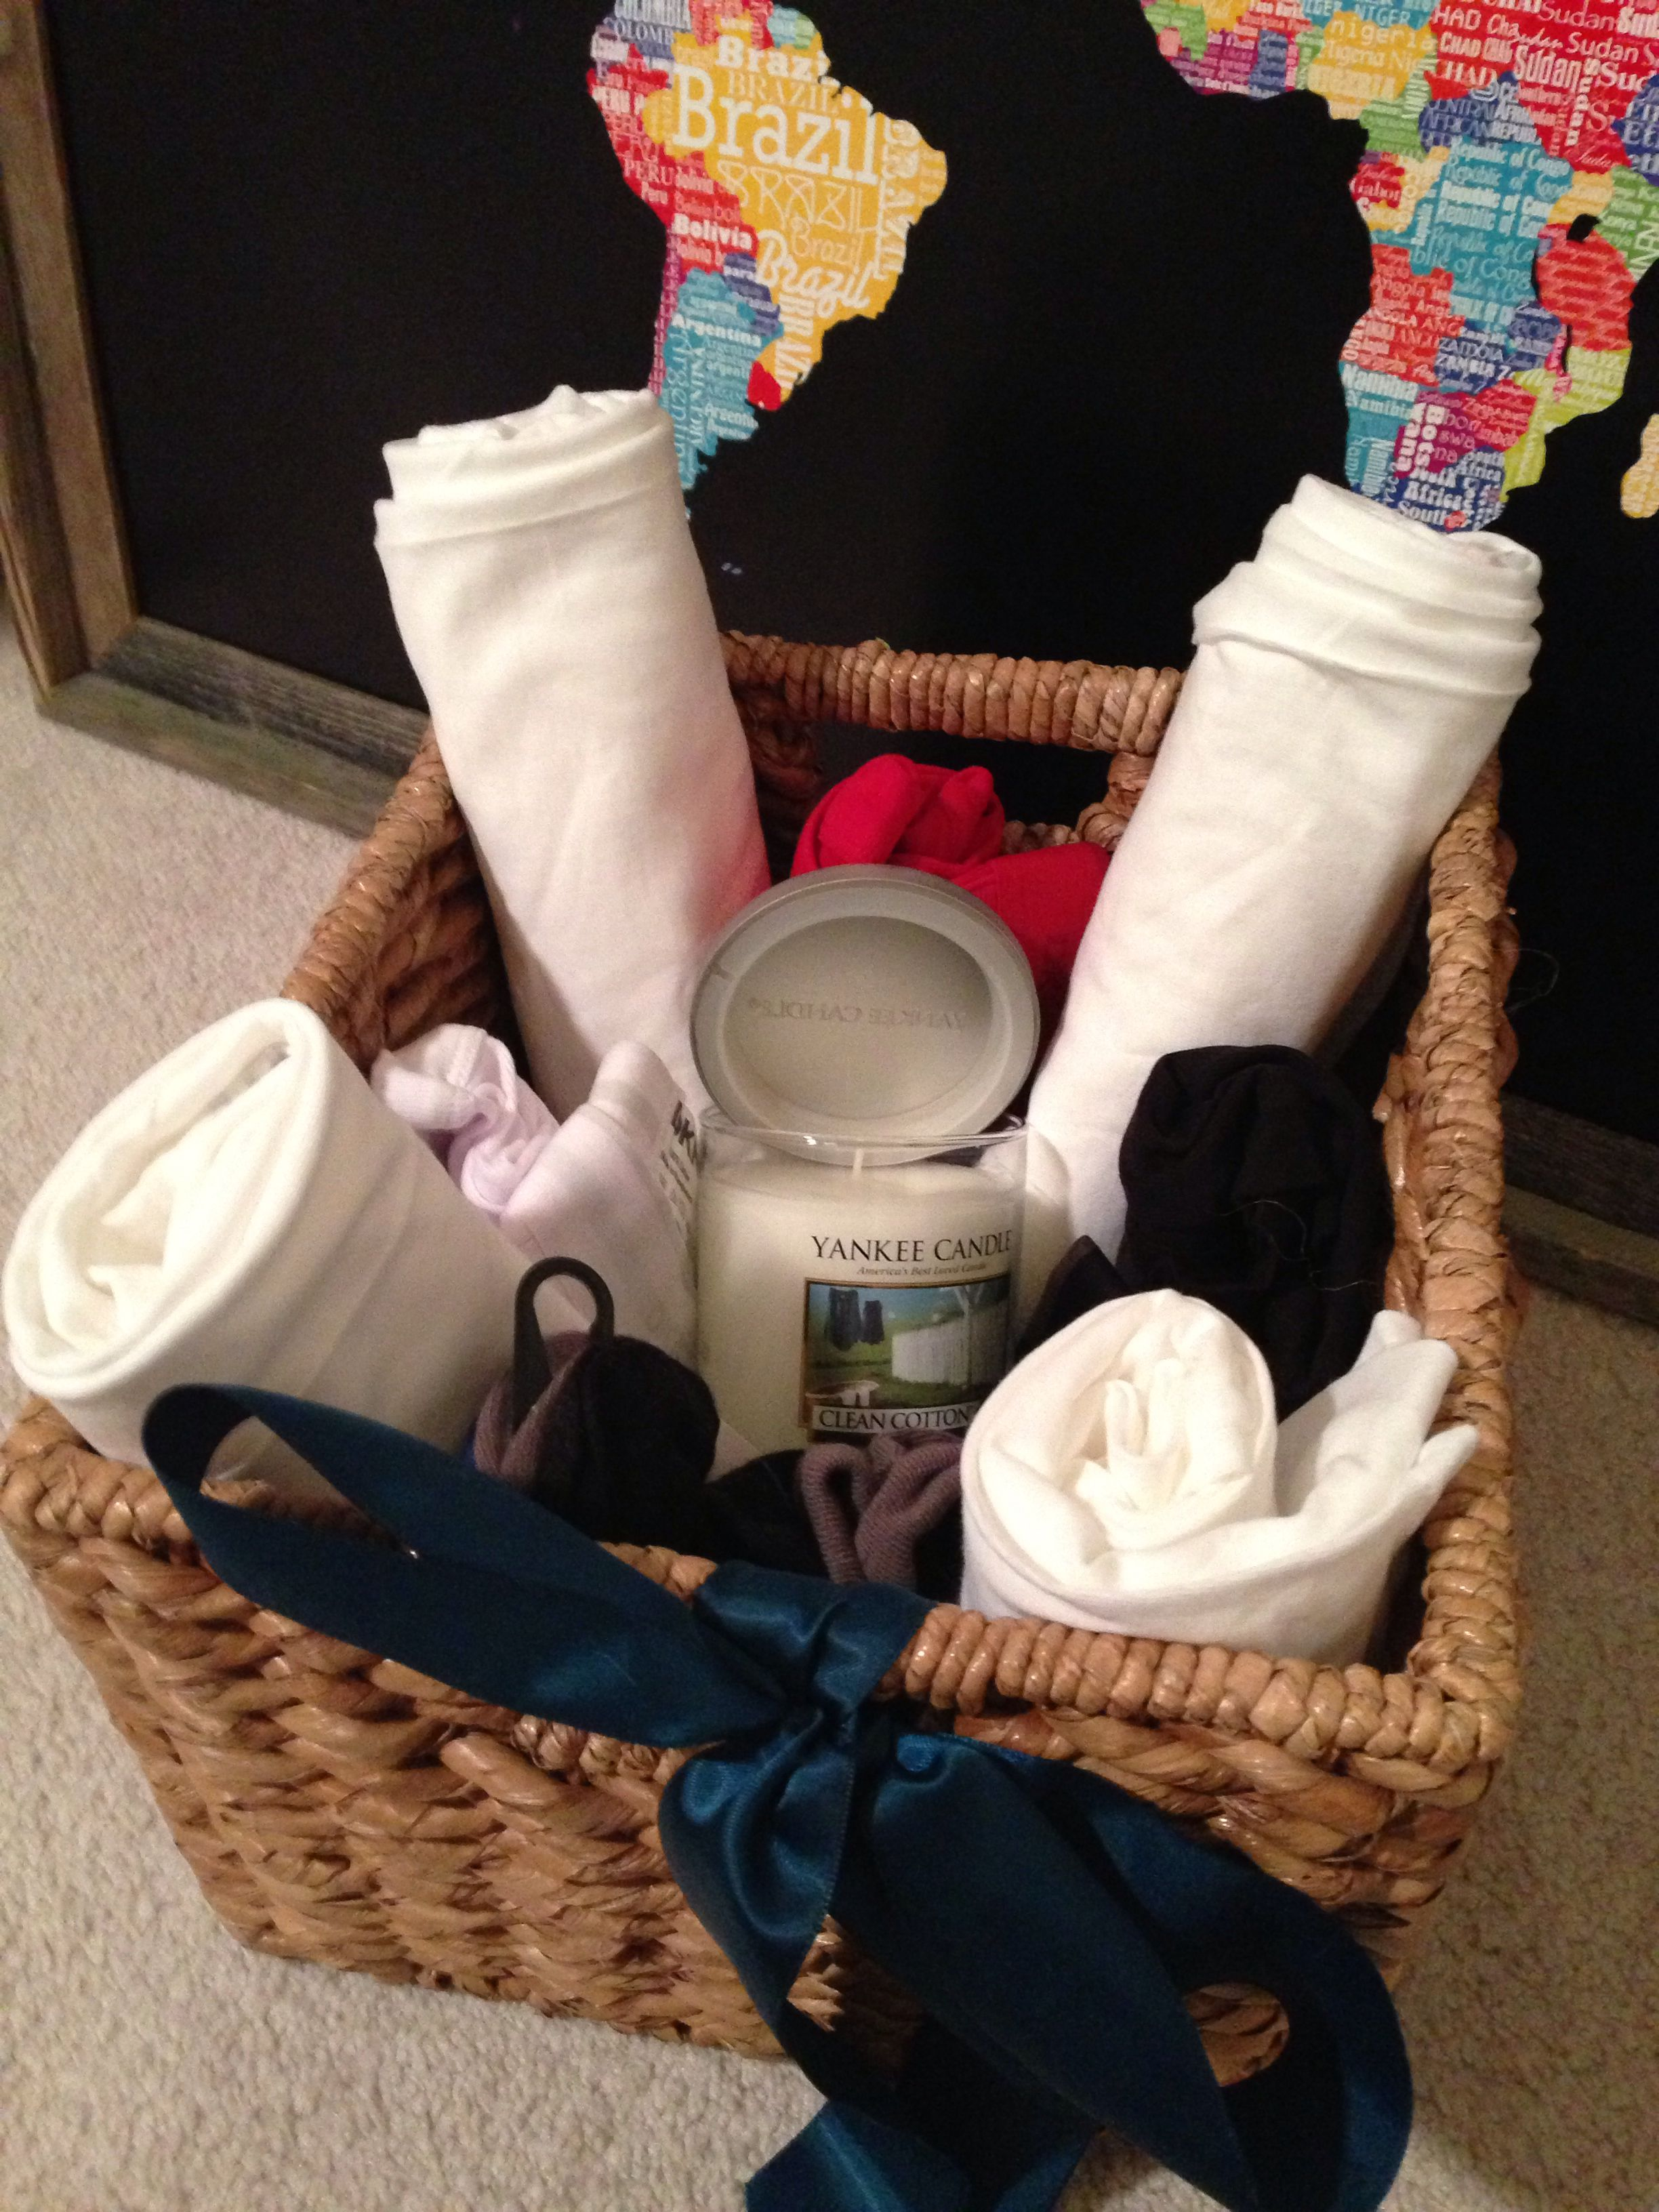 Cotton Gifts For 2nd Wedding Anniversary: 2nd Wedding Anniversary Gift Idea - Cotton Basket.